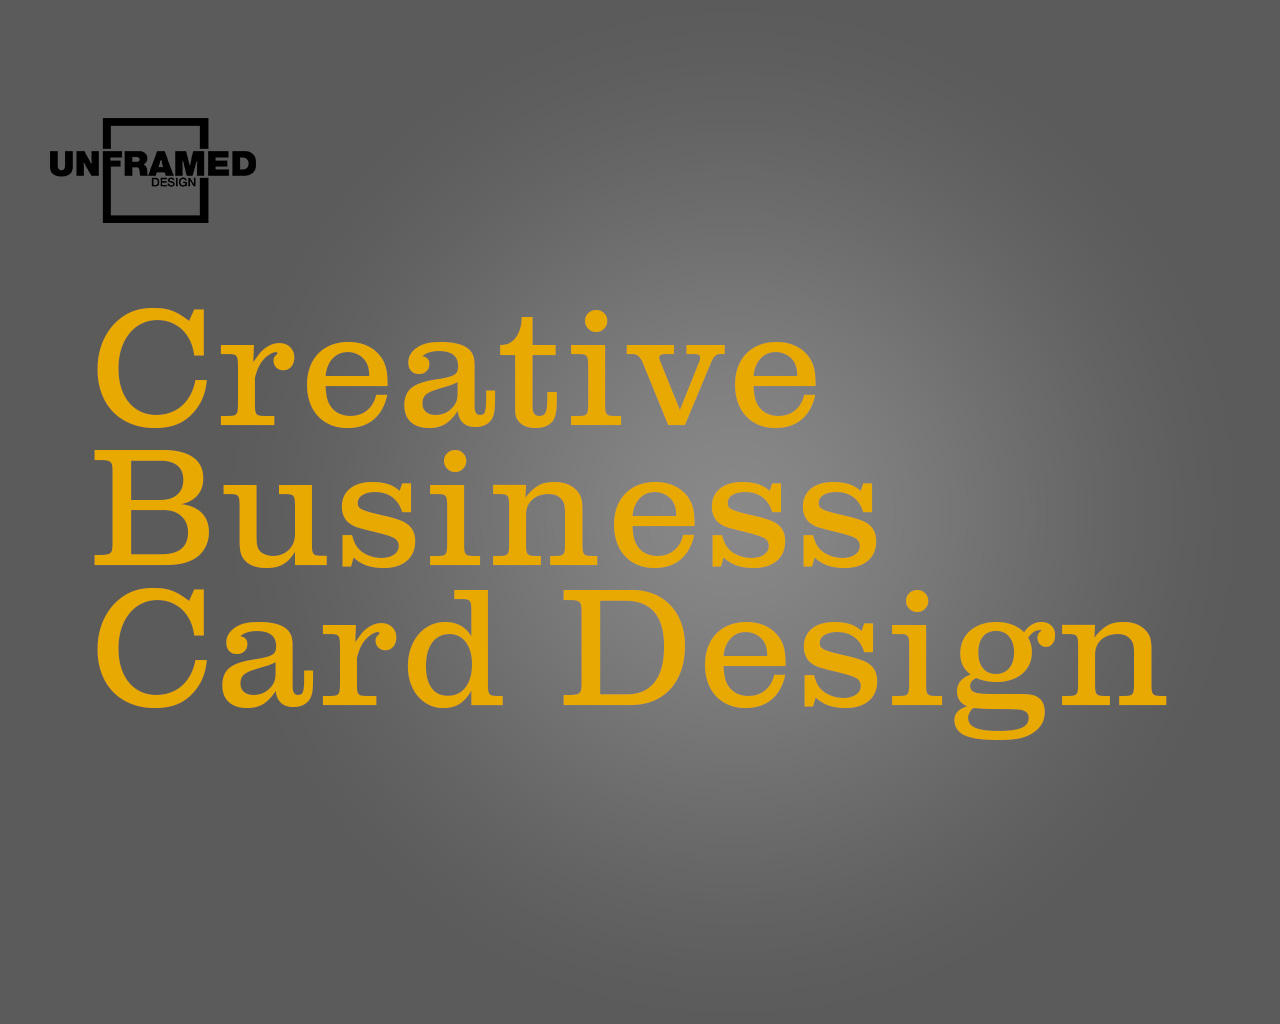 Creative Business Card Design by Unframed_Design - 67573